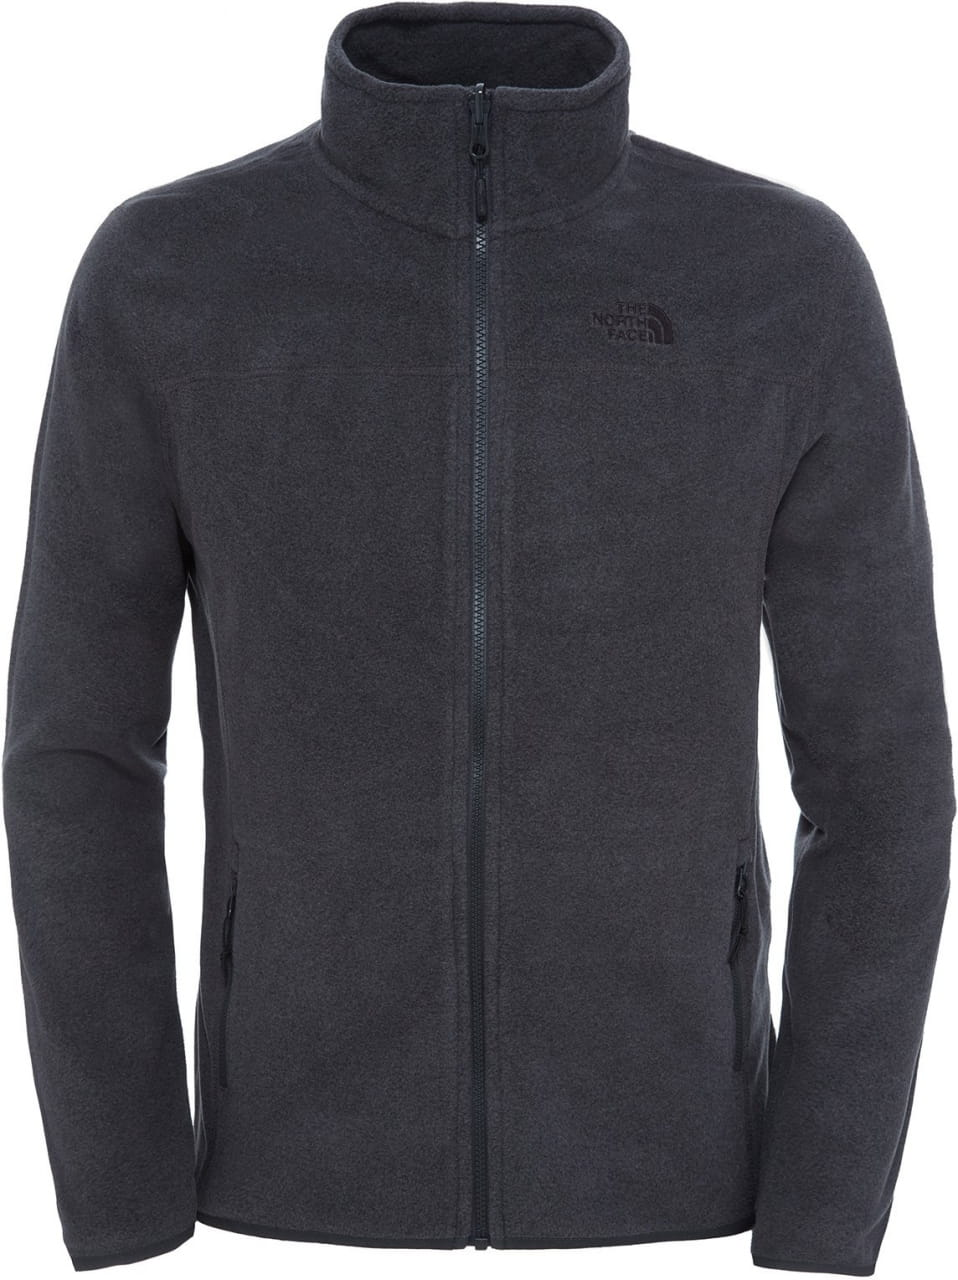 Pánská flísová mikina The North Face Men's 100 Glacier Fleece Jacket